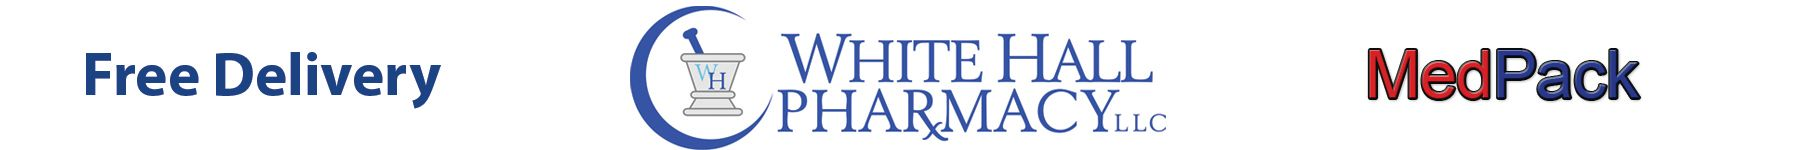 White Hall Pharmacy